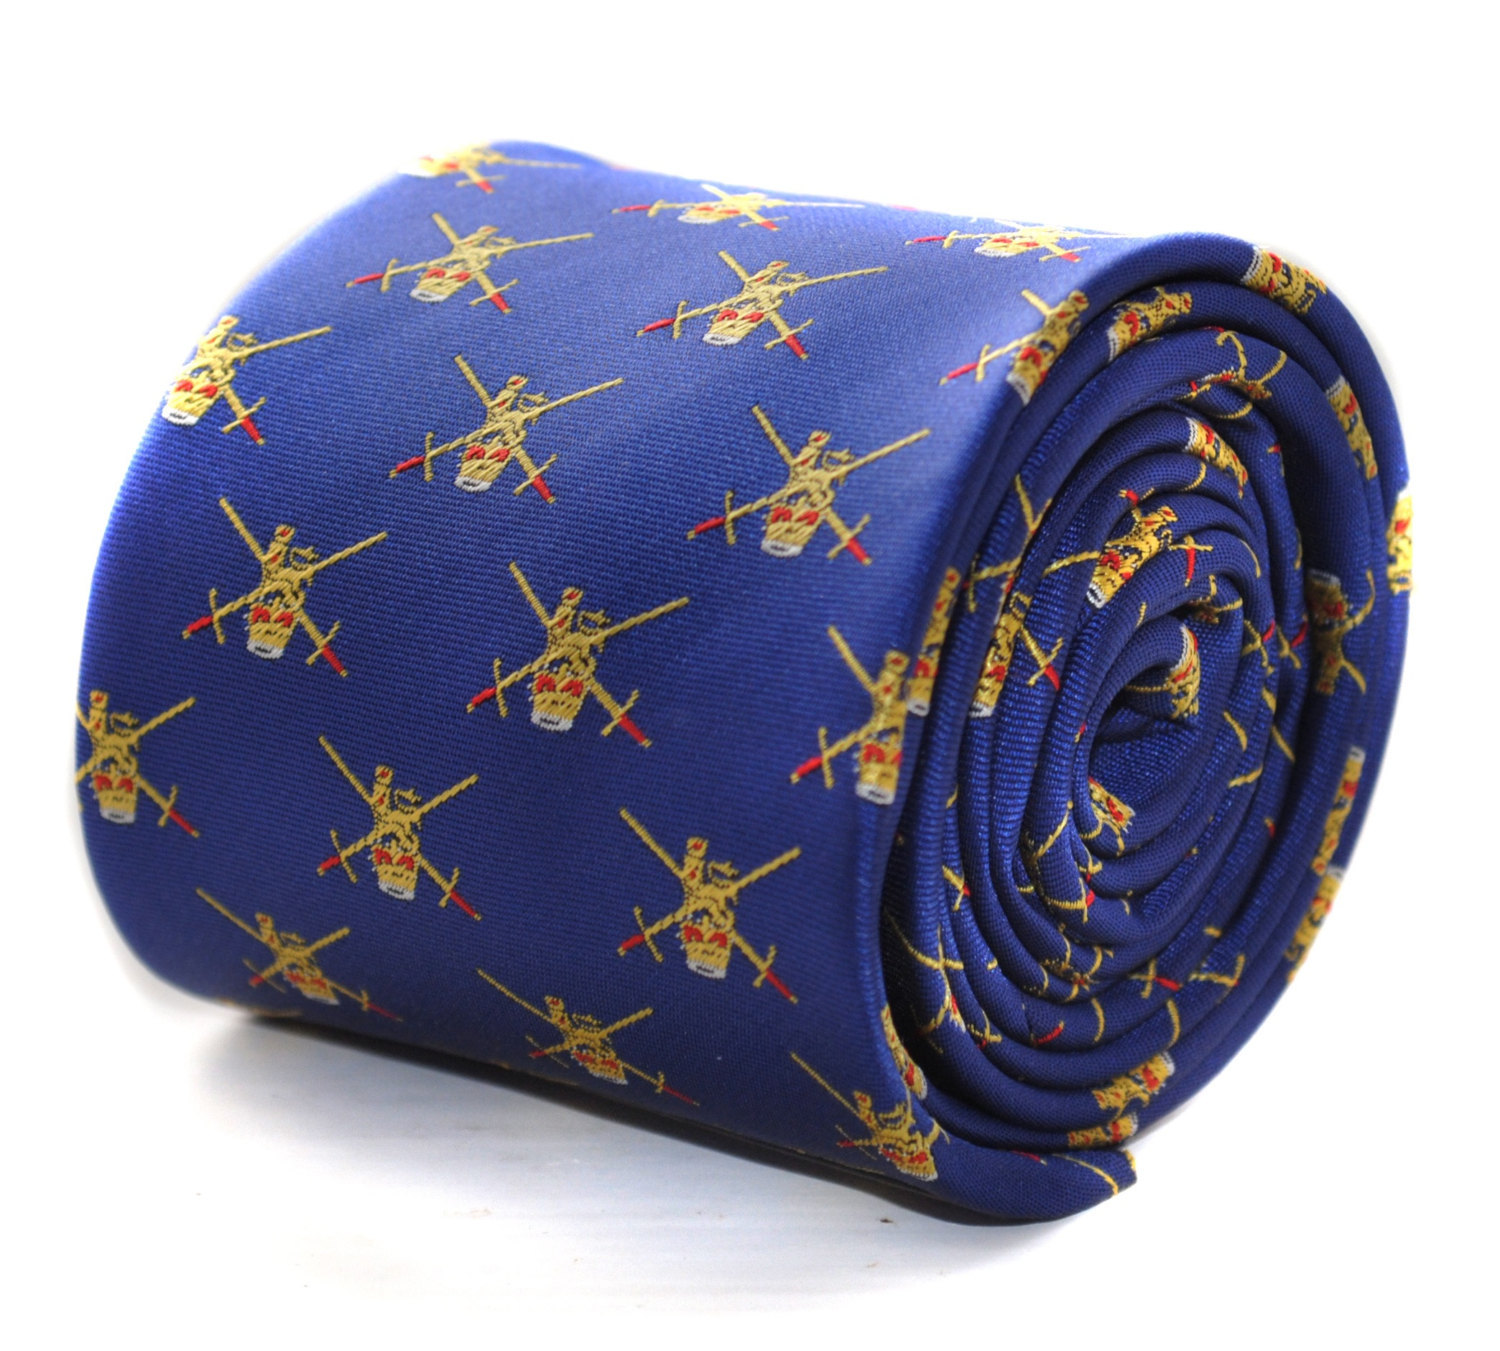 royal blue tie with Army Insigna embroidered design with signature floral design